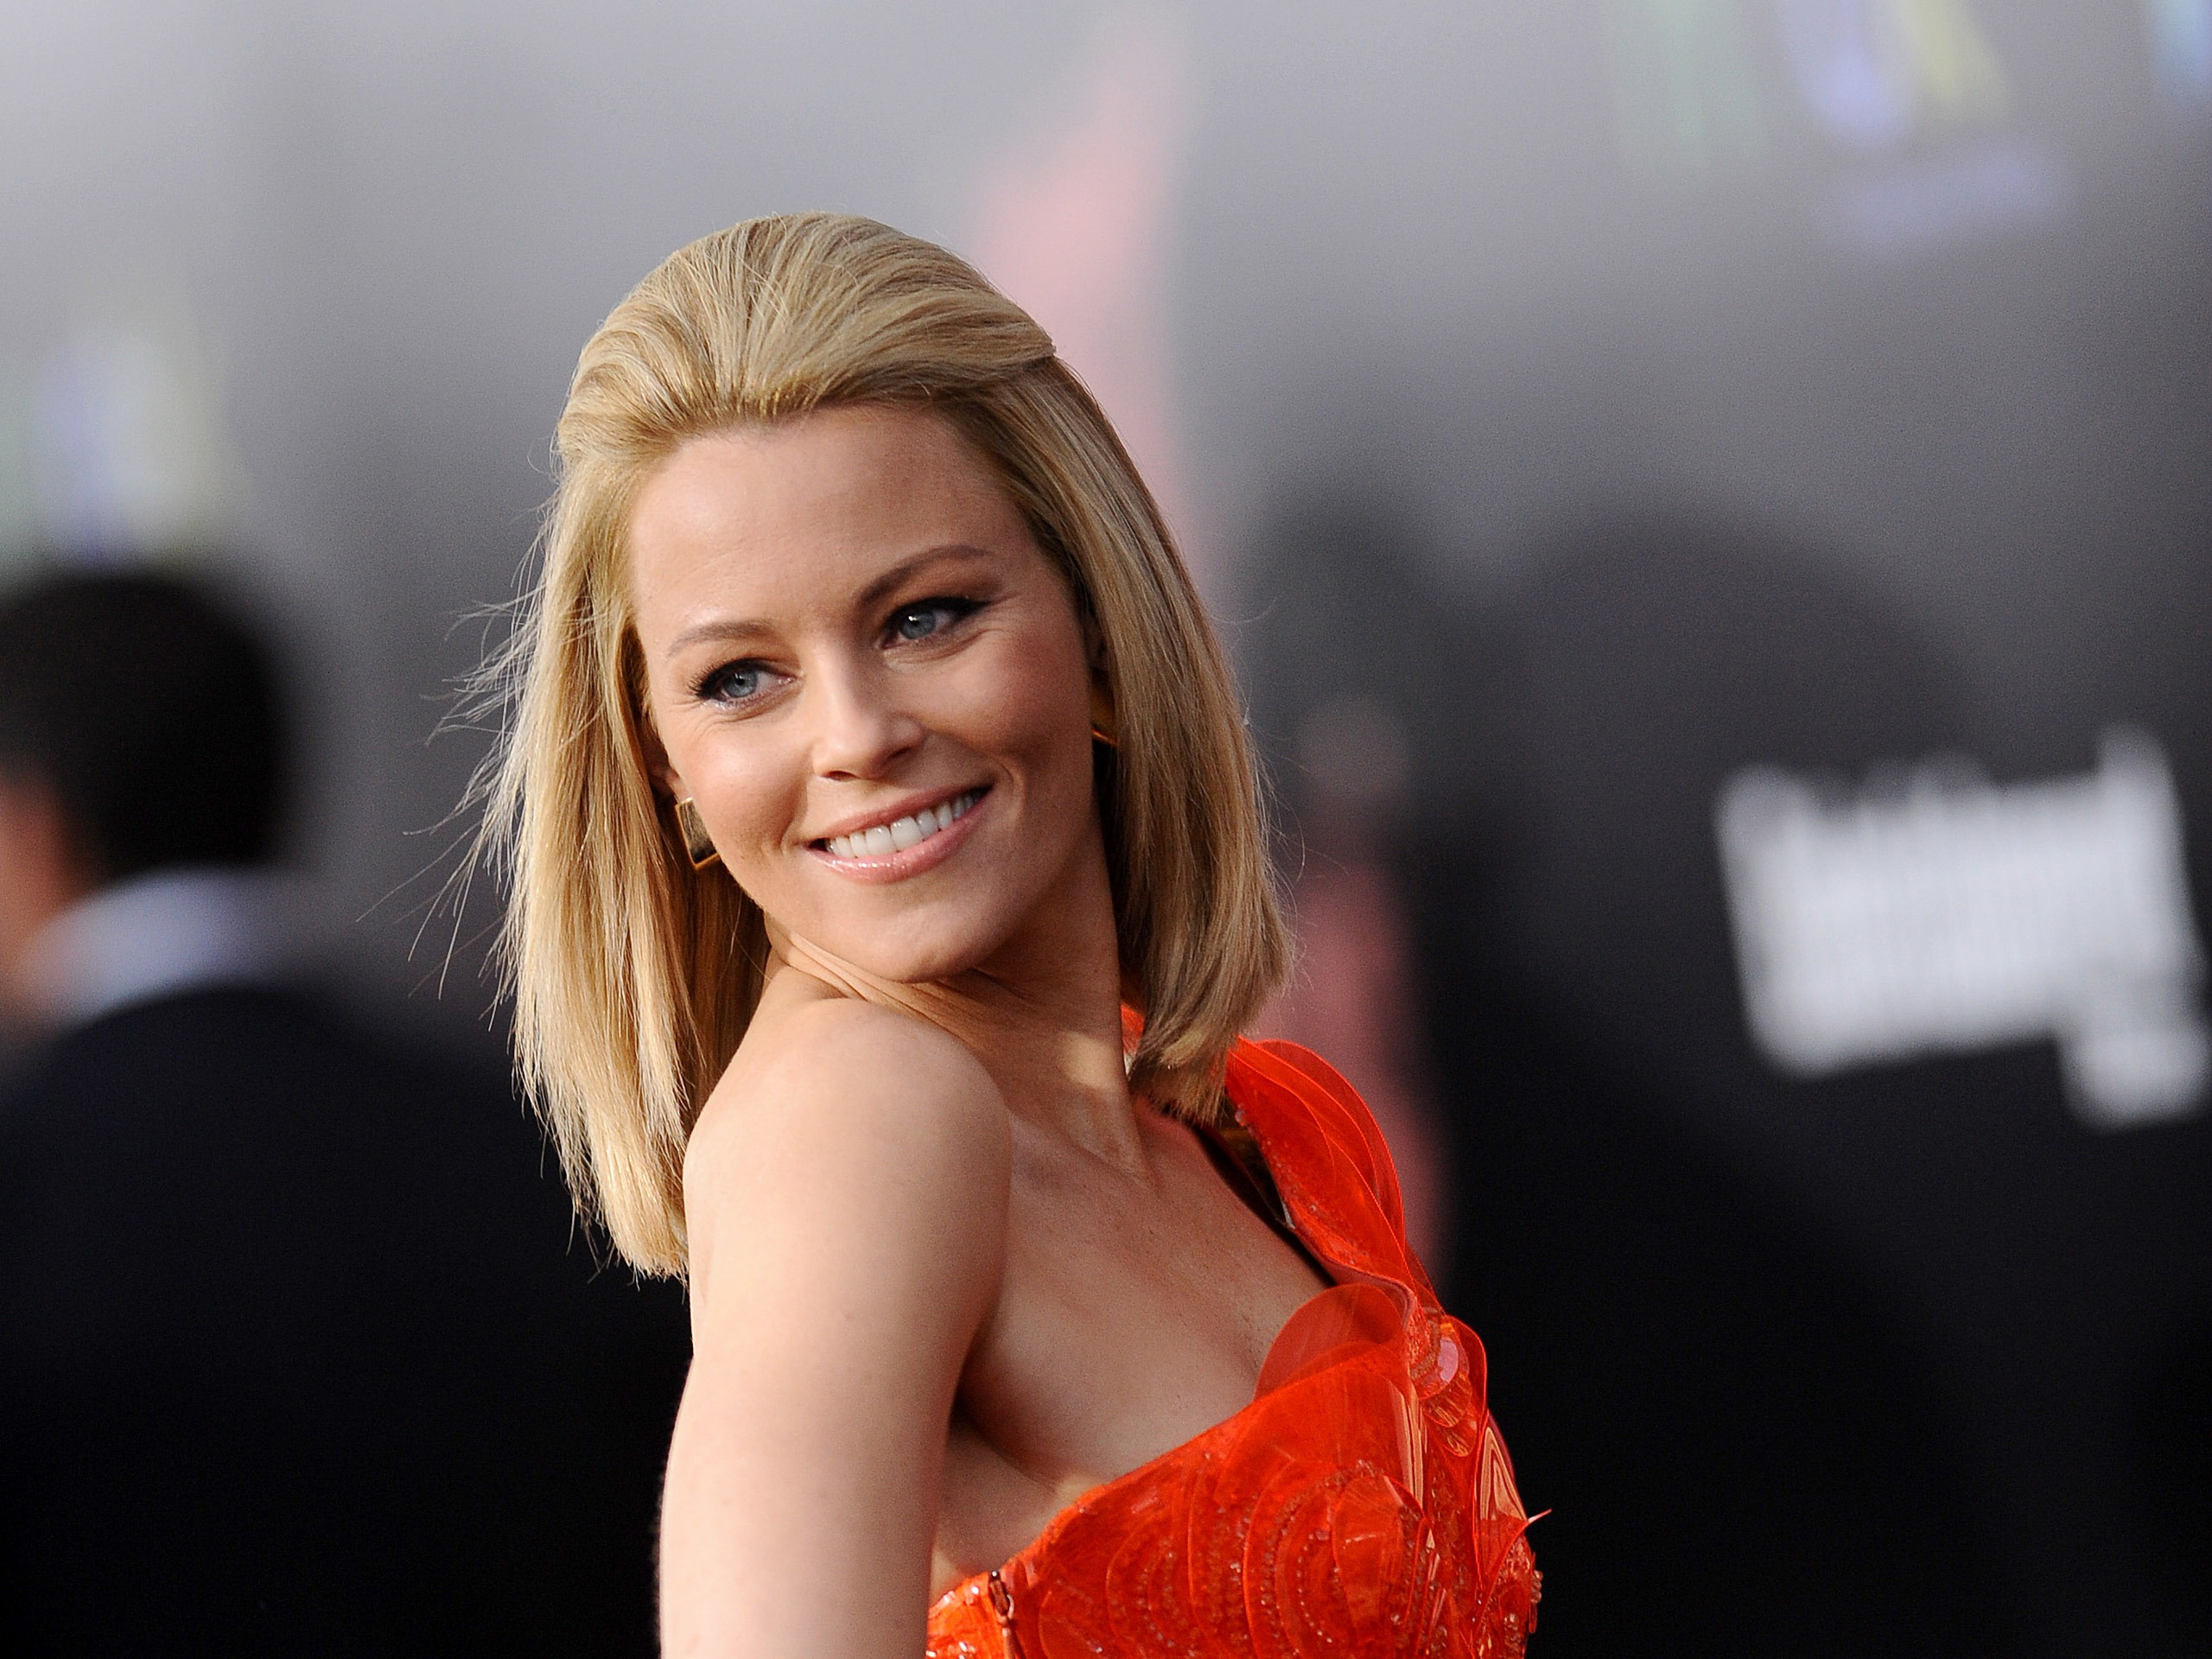 elizabeth banks celebrity wallpaper photos 53598